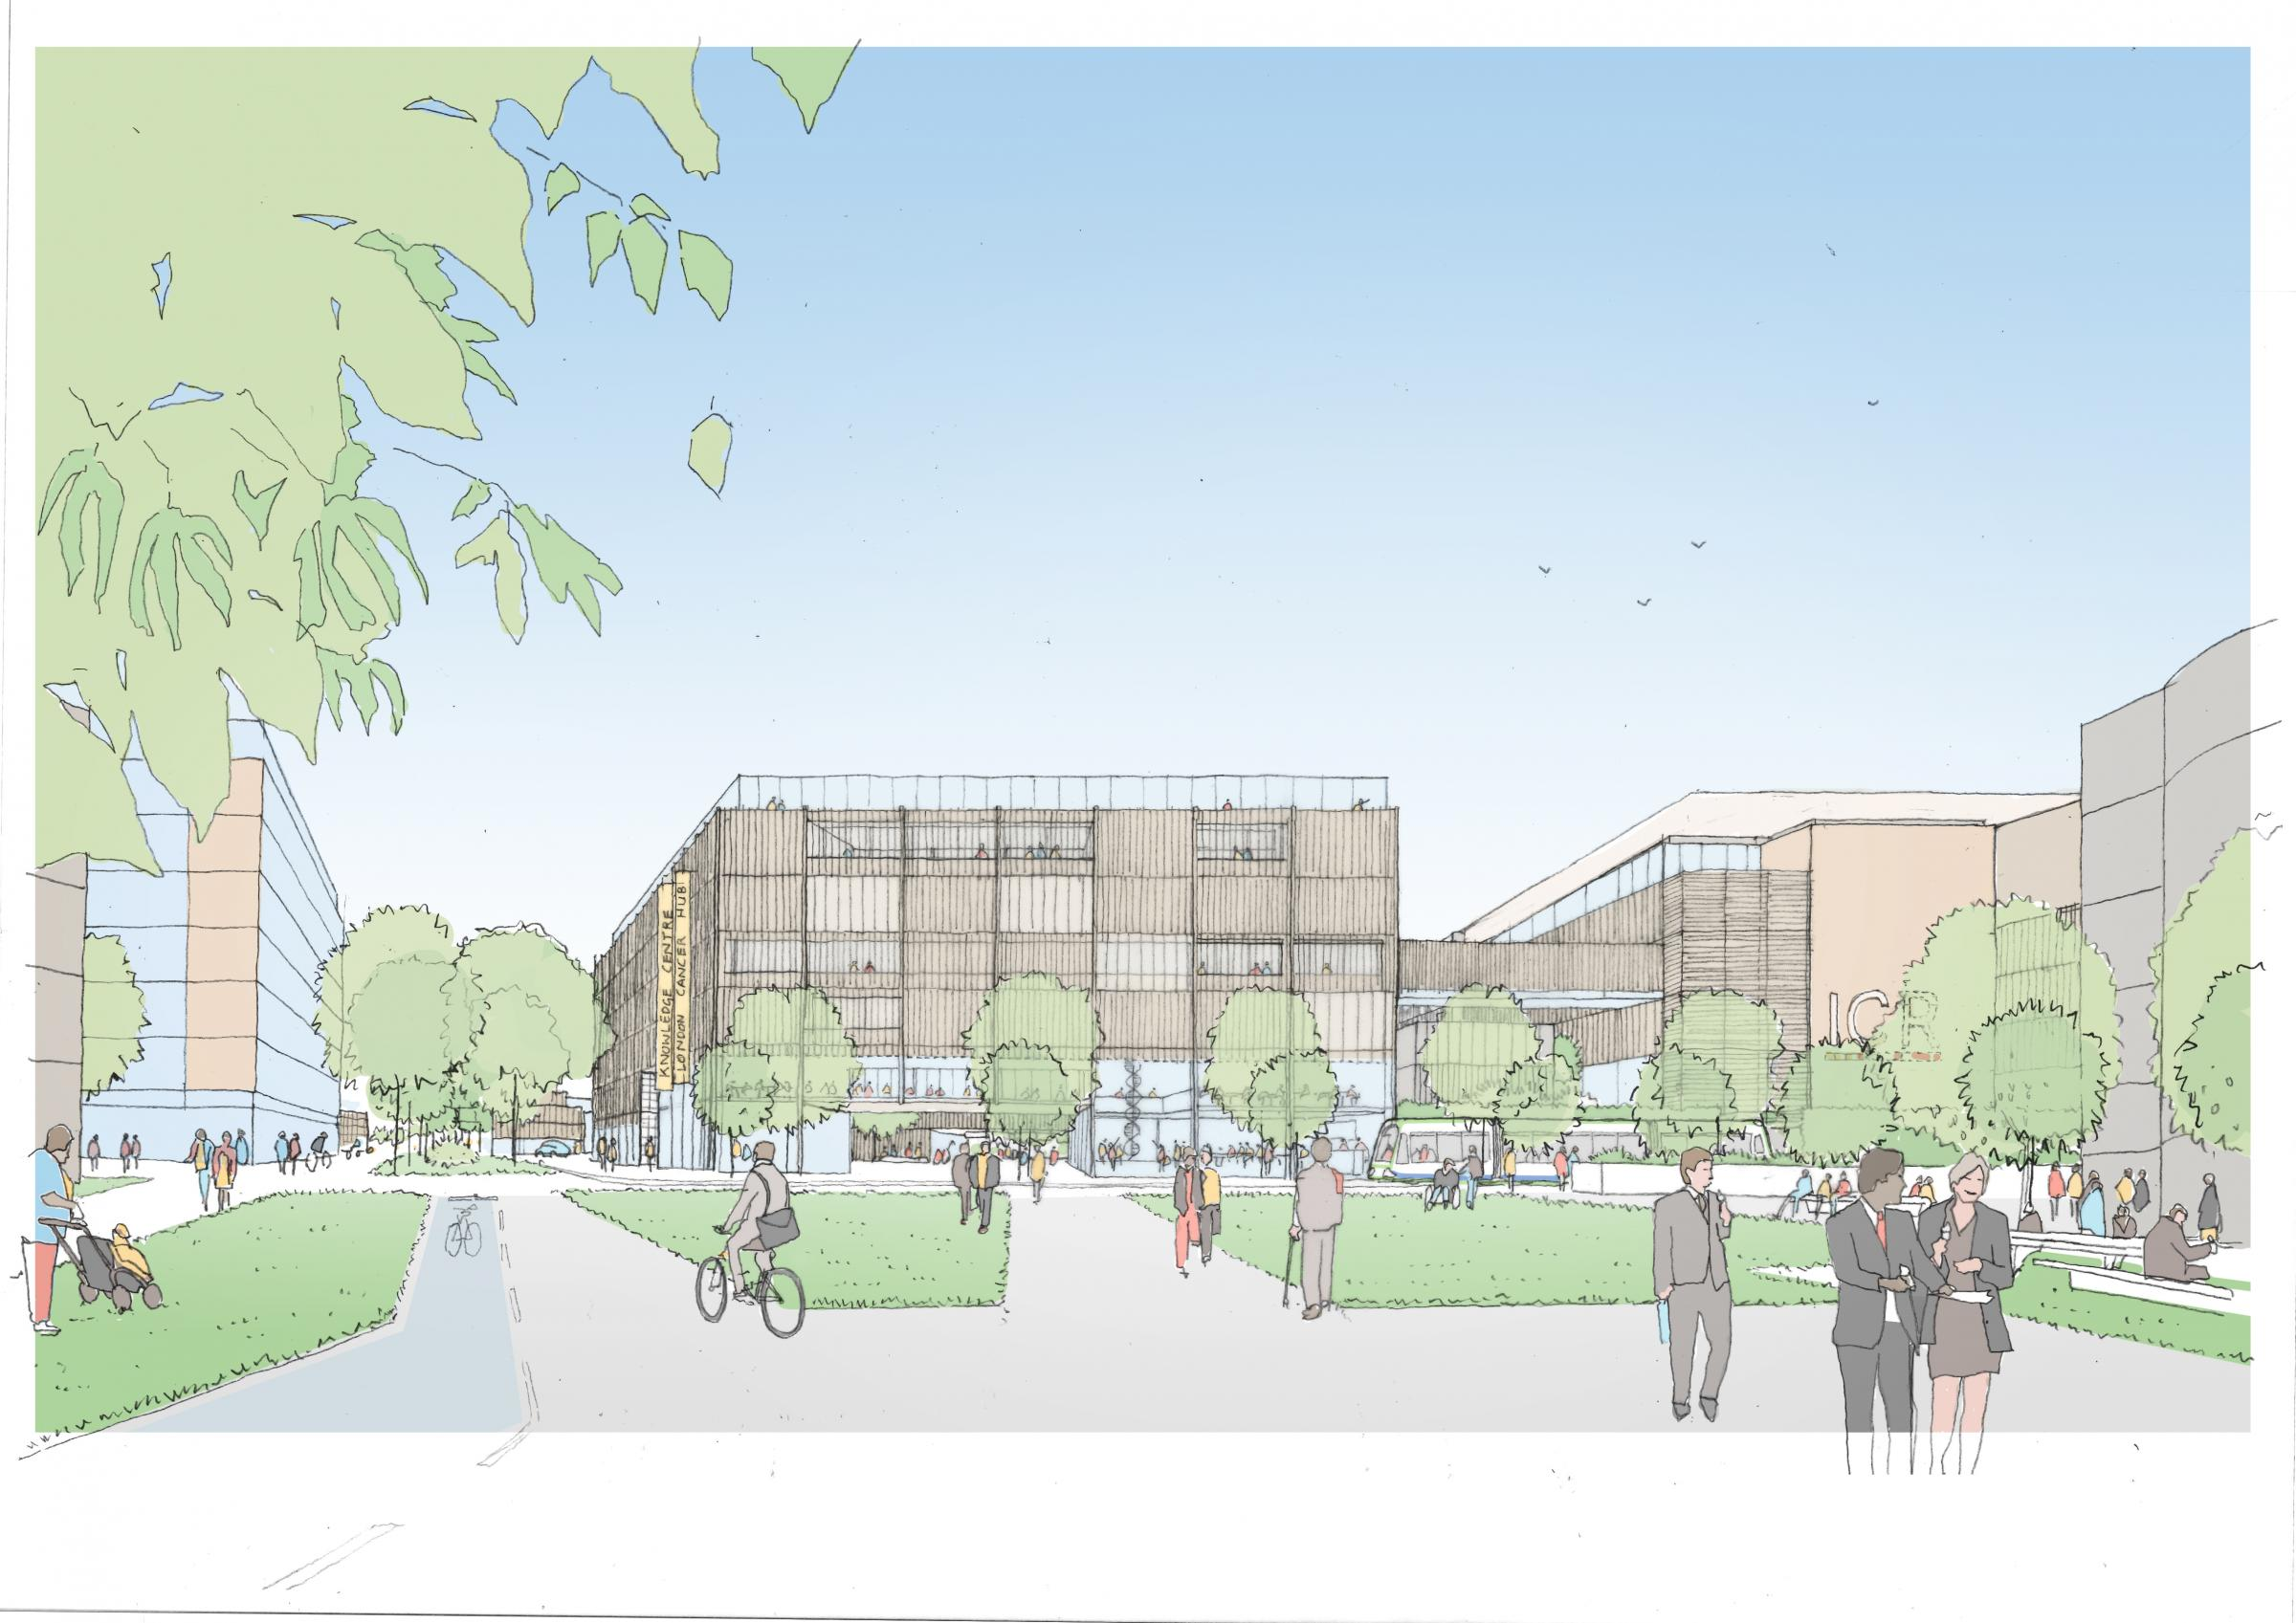 An artist's impression of the cancer research hub